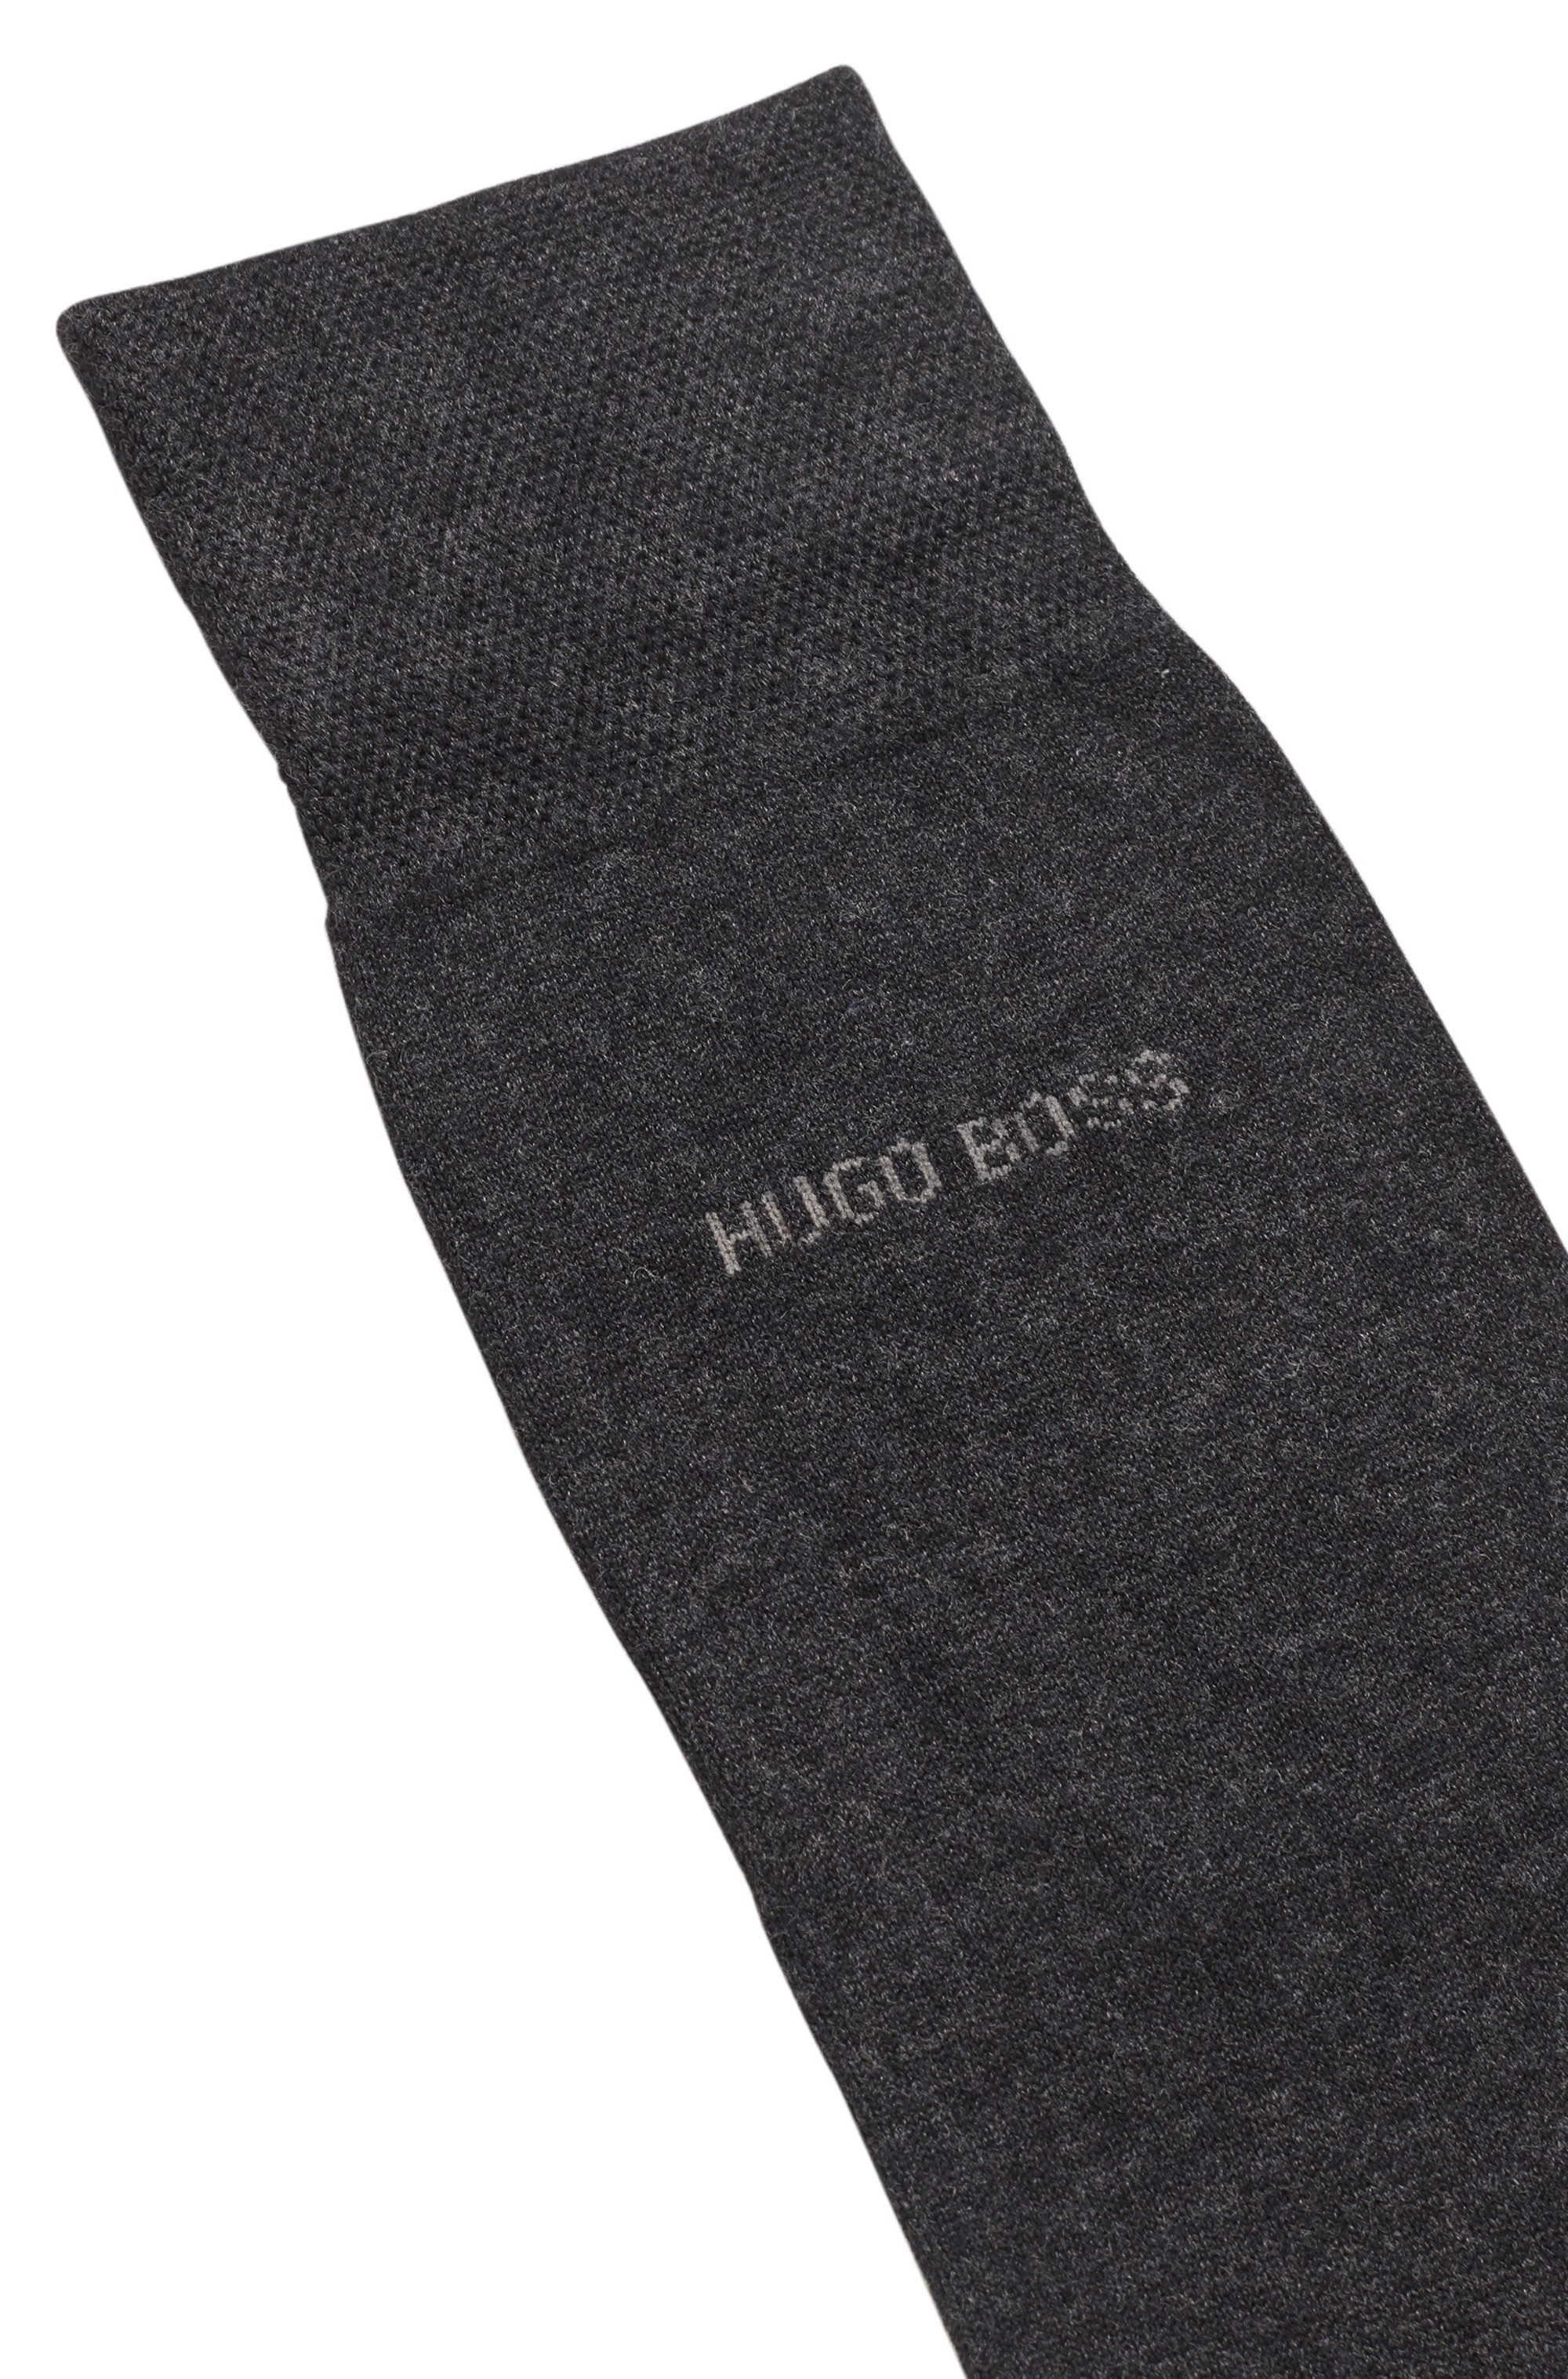 Regular-length socks in technical fabric with bamboo viscose